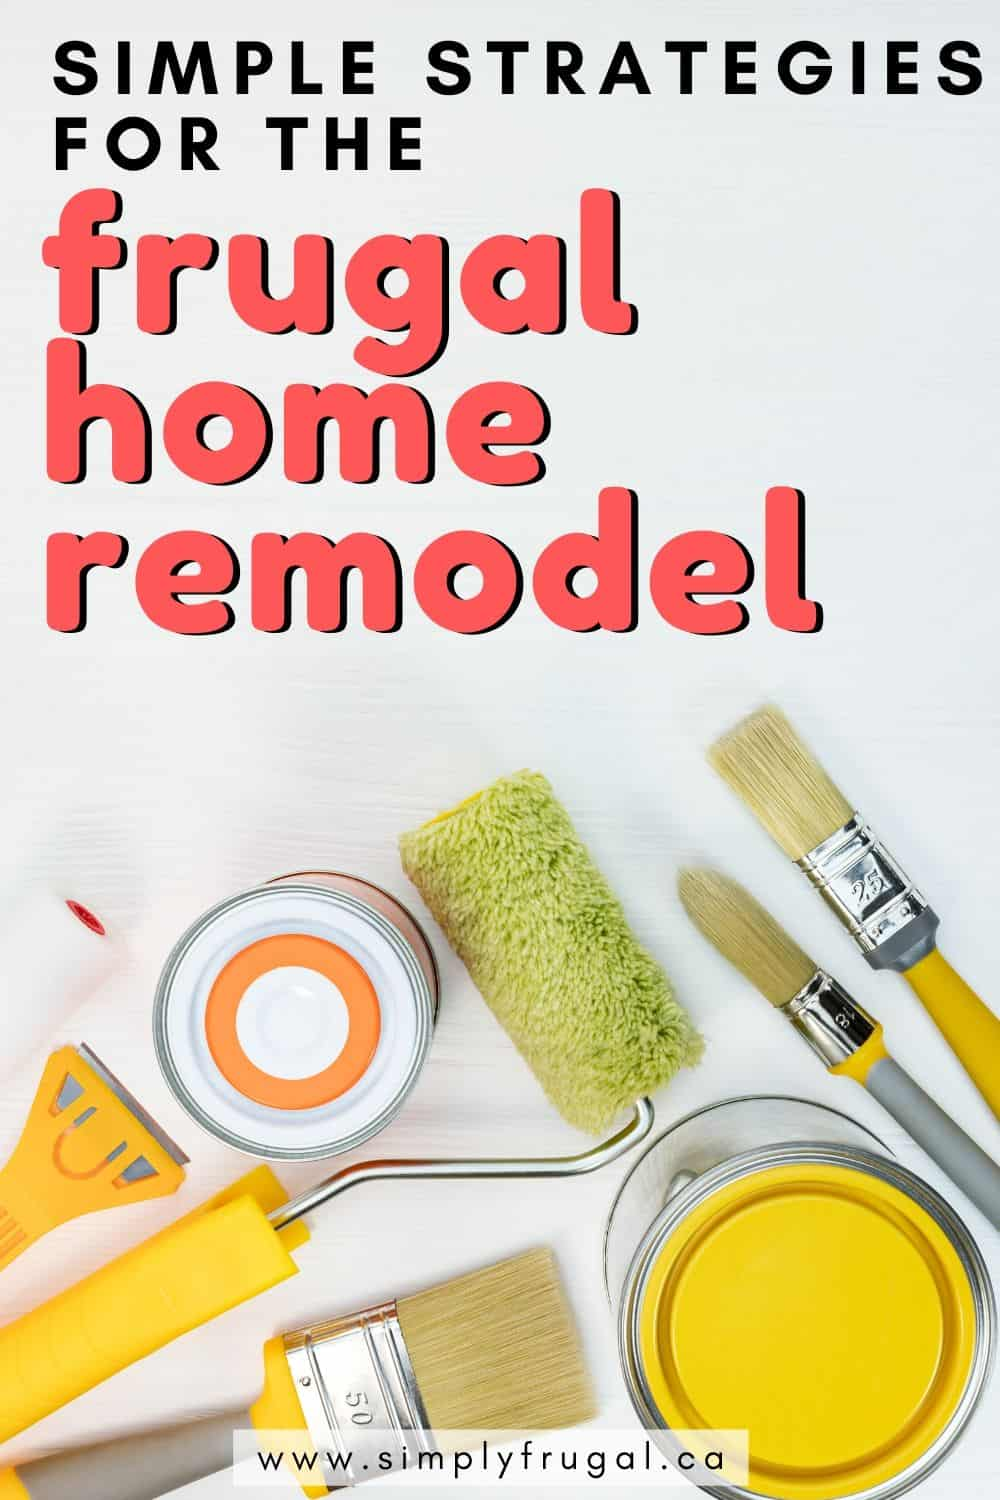 Here are several strategies you can implement to make sure your home remodel fits your budget and delivers the best return on investment!